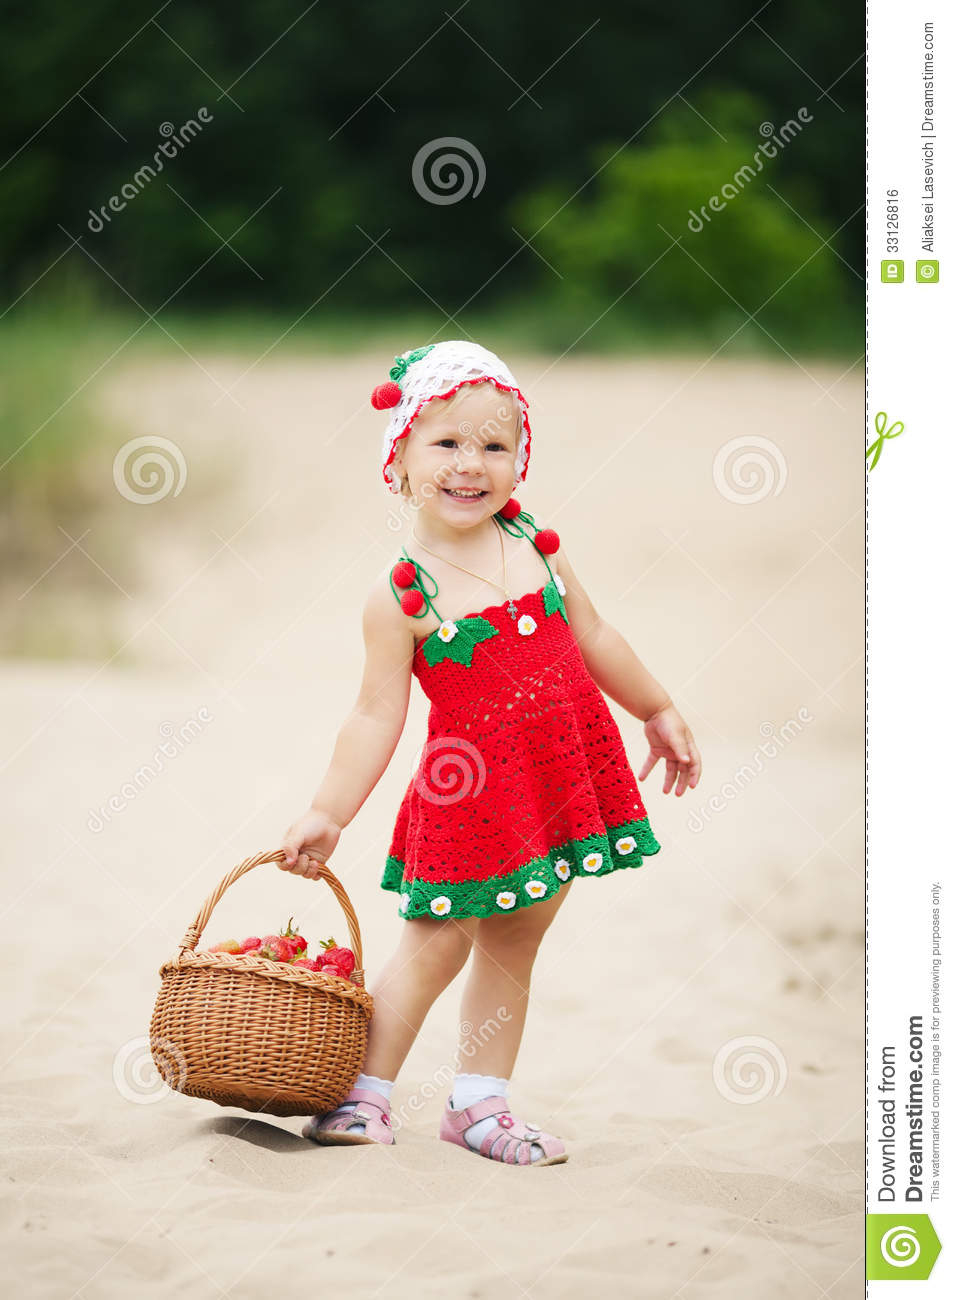 Girl With The Blog: Little Girl With Basket Full Of Strawberries Stock Photo